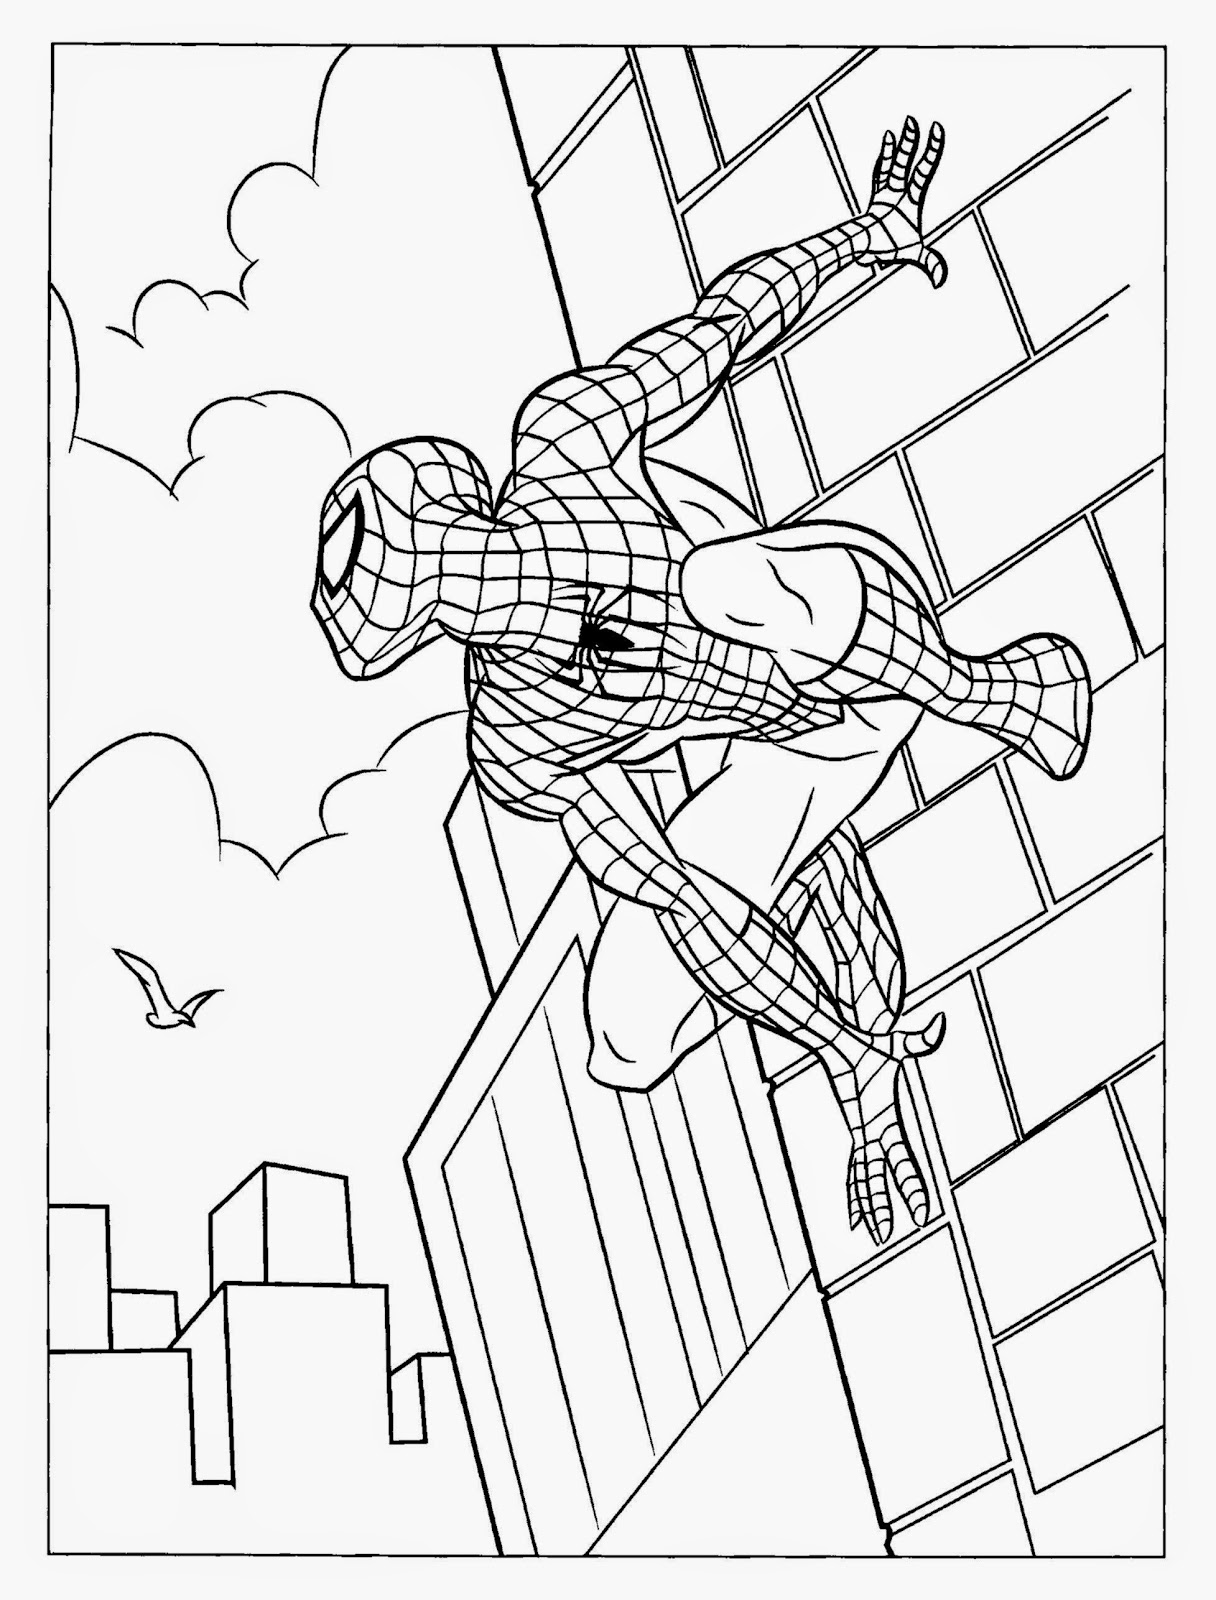 spiderman free coloring pages - spiderman color sheets free coloring sheet